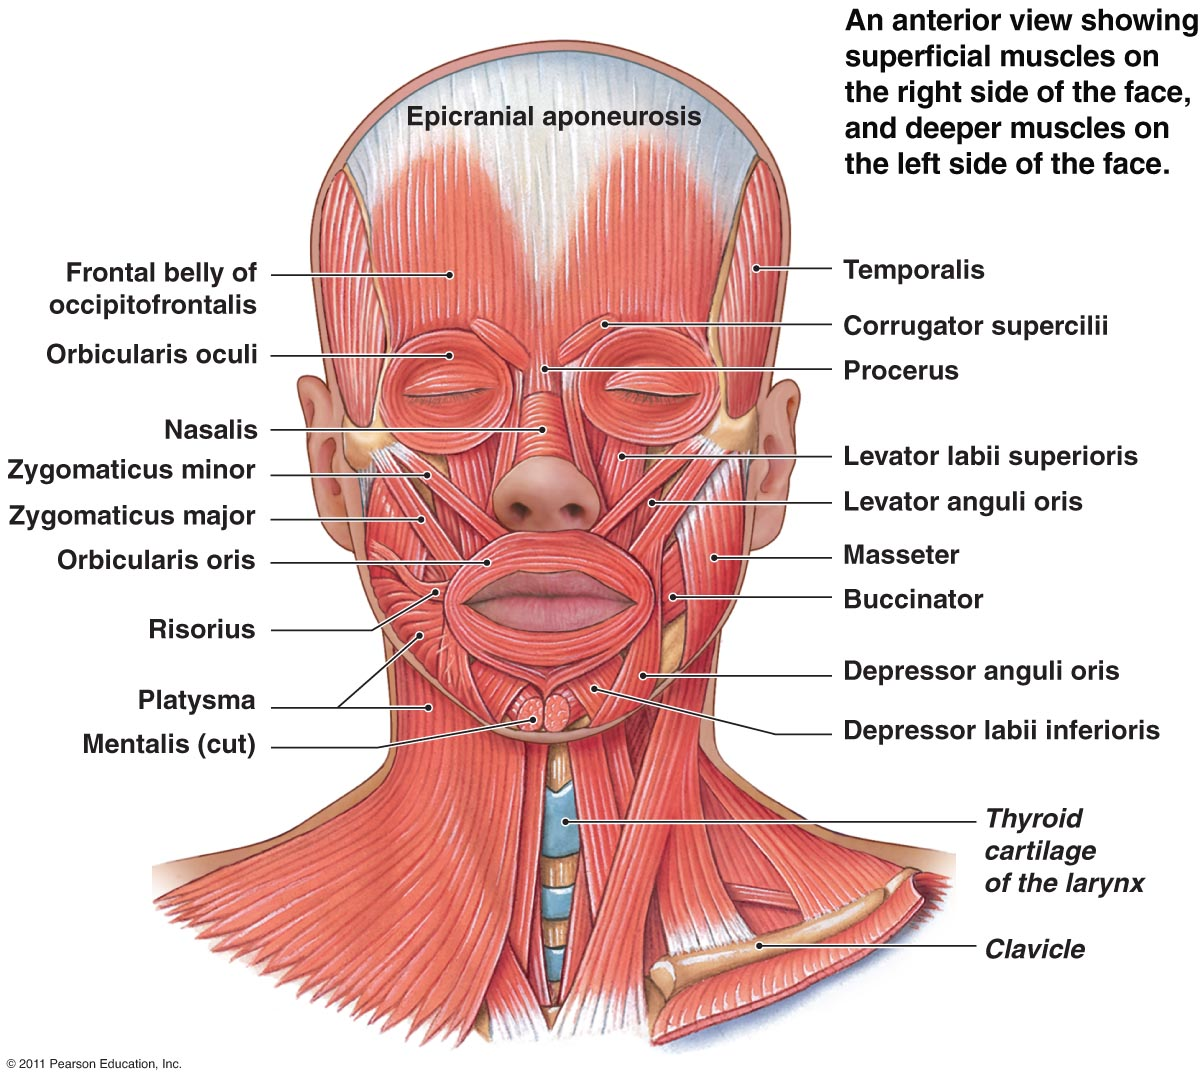 Smile Line Muscles Of The Facial Expression